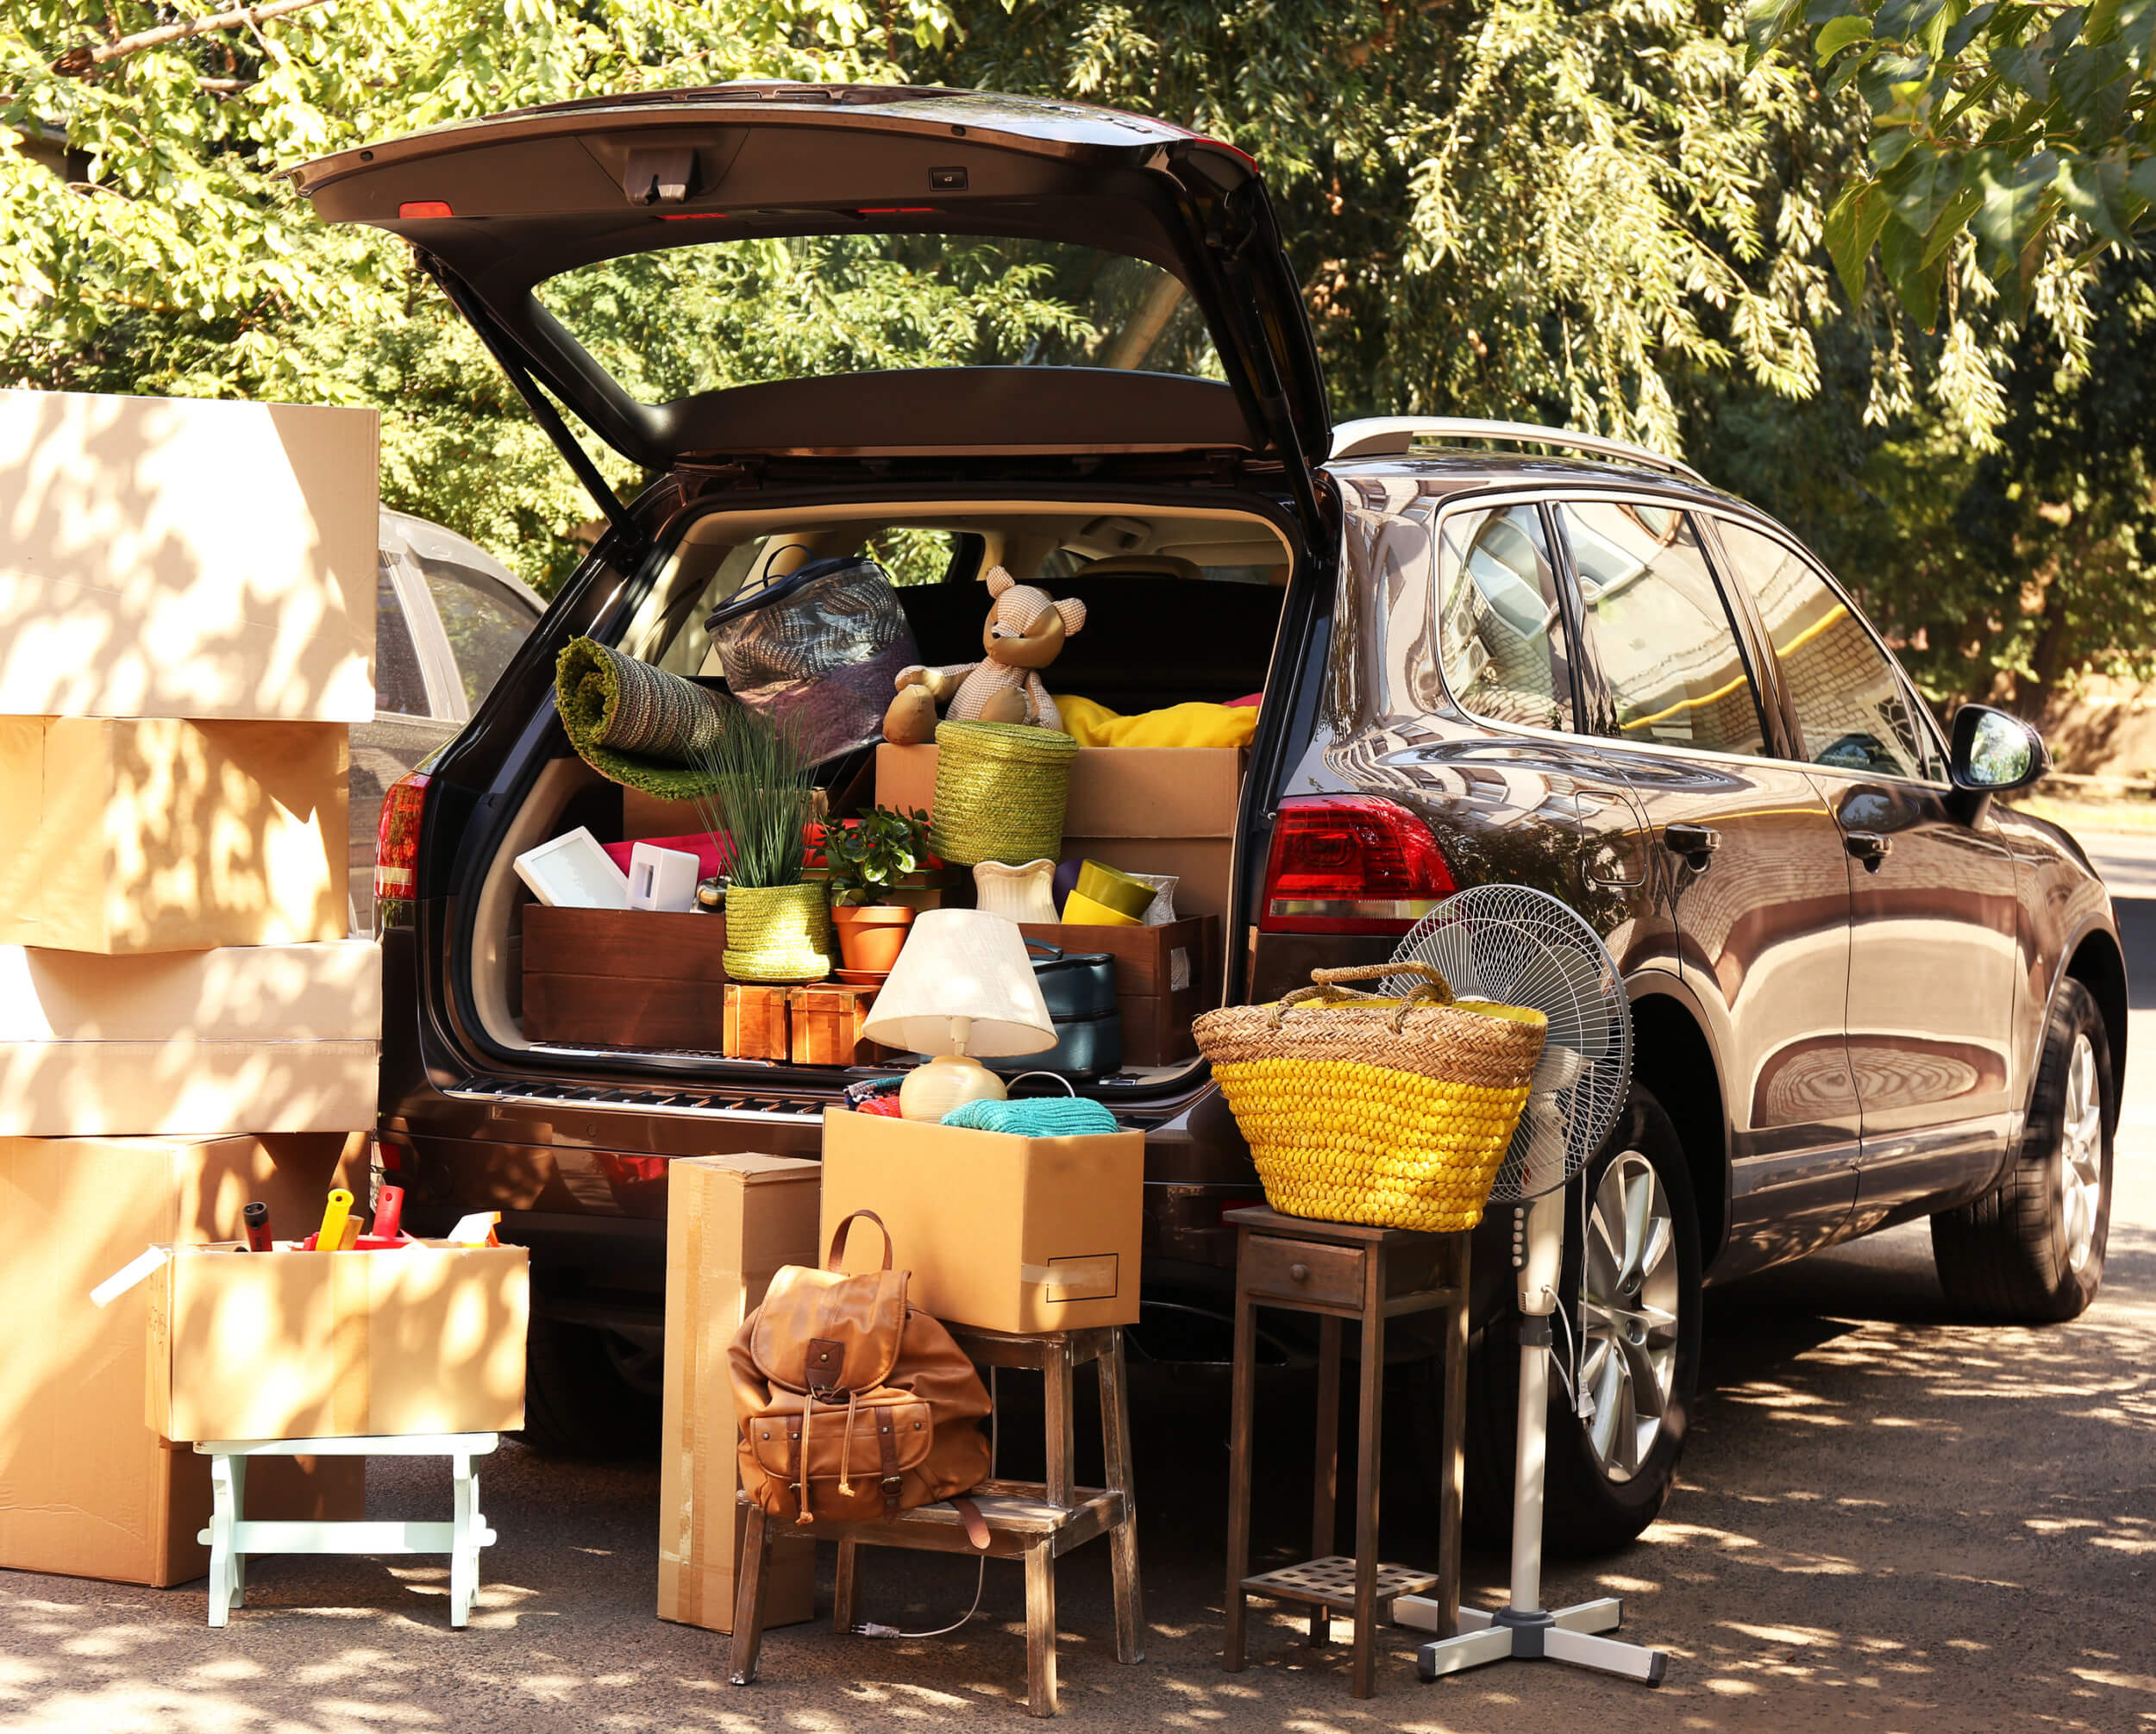 Brown SUV packed with toys, boxes and furniture which is bad for eco driving